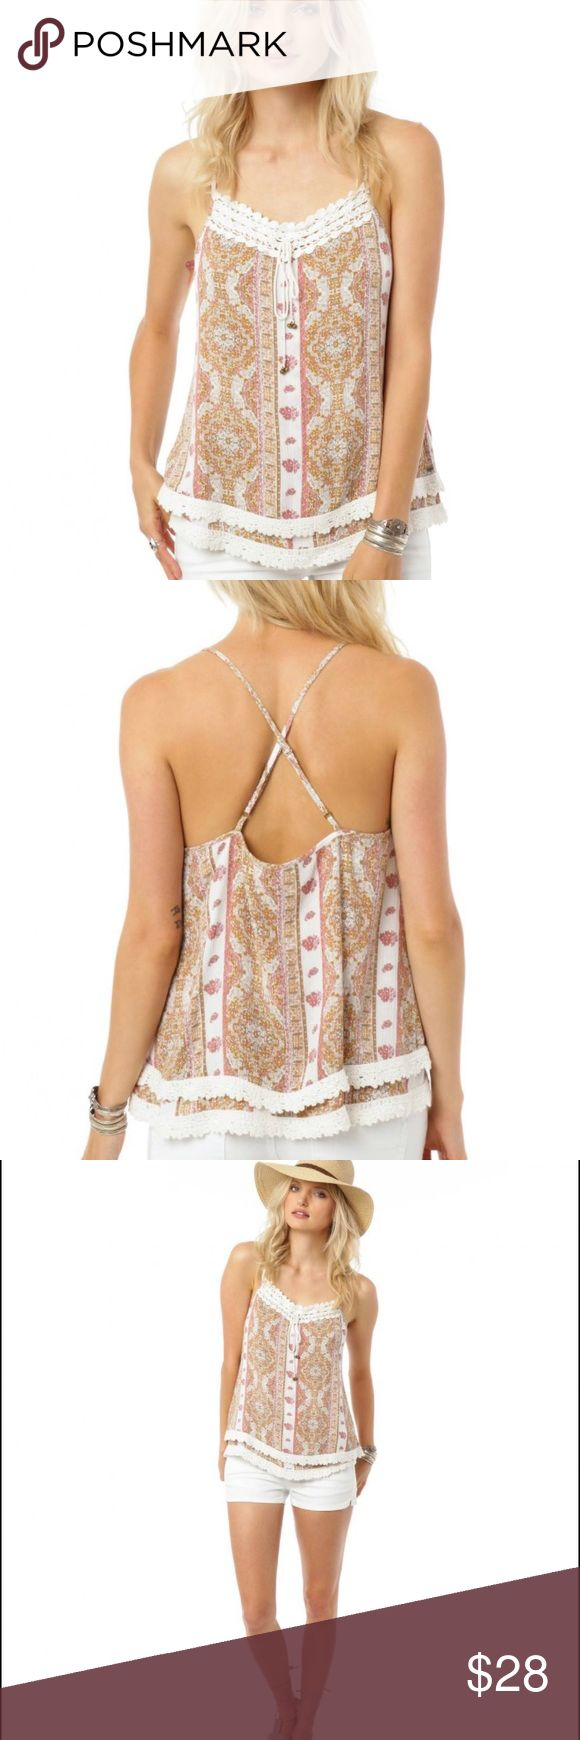 "O'NEILL KASSIA TOP Pack, board and away! Fly off to good vibes and wild summer nights in the O'Neill women's Kassia Top.  Spaghetti strap tank top Losse, easy fit Tassel embellished rope tie detail Crochet neckline and tiered hemline detail Allover muted print 17"" in length 100% Viscose O'Neill Tops"